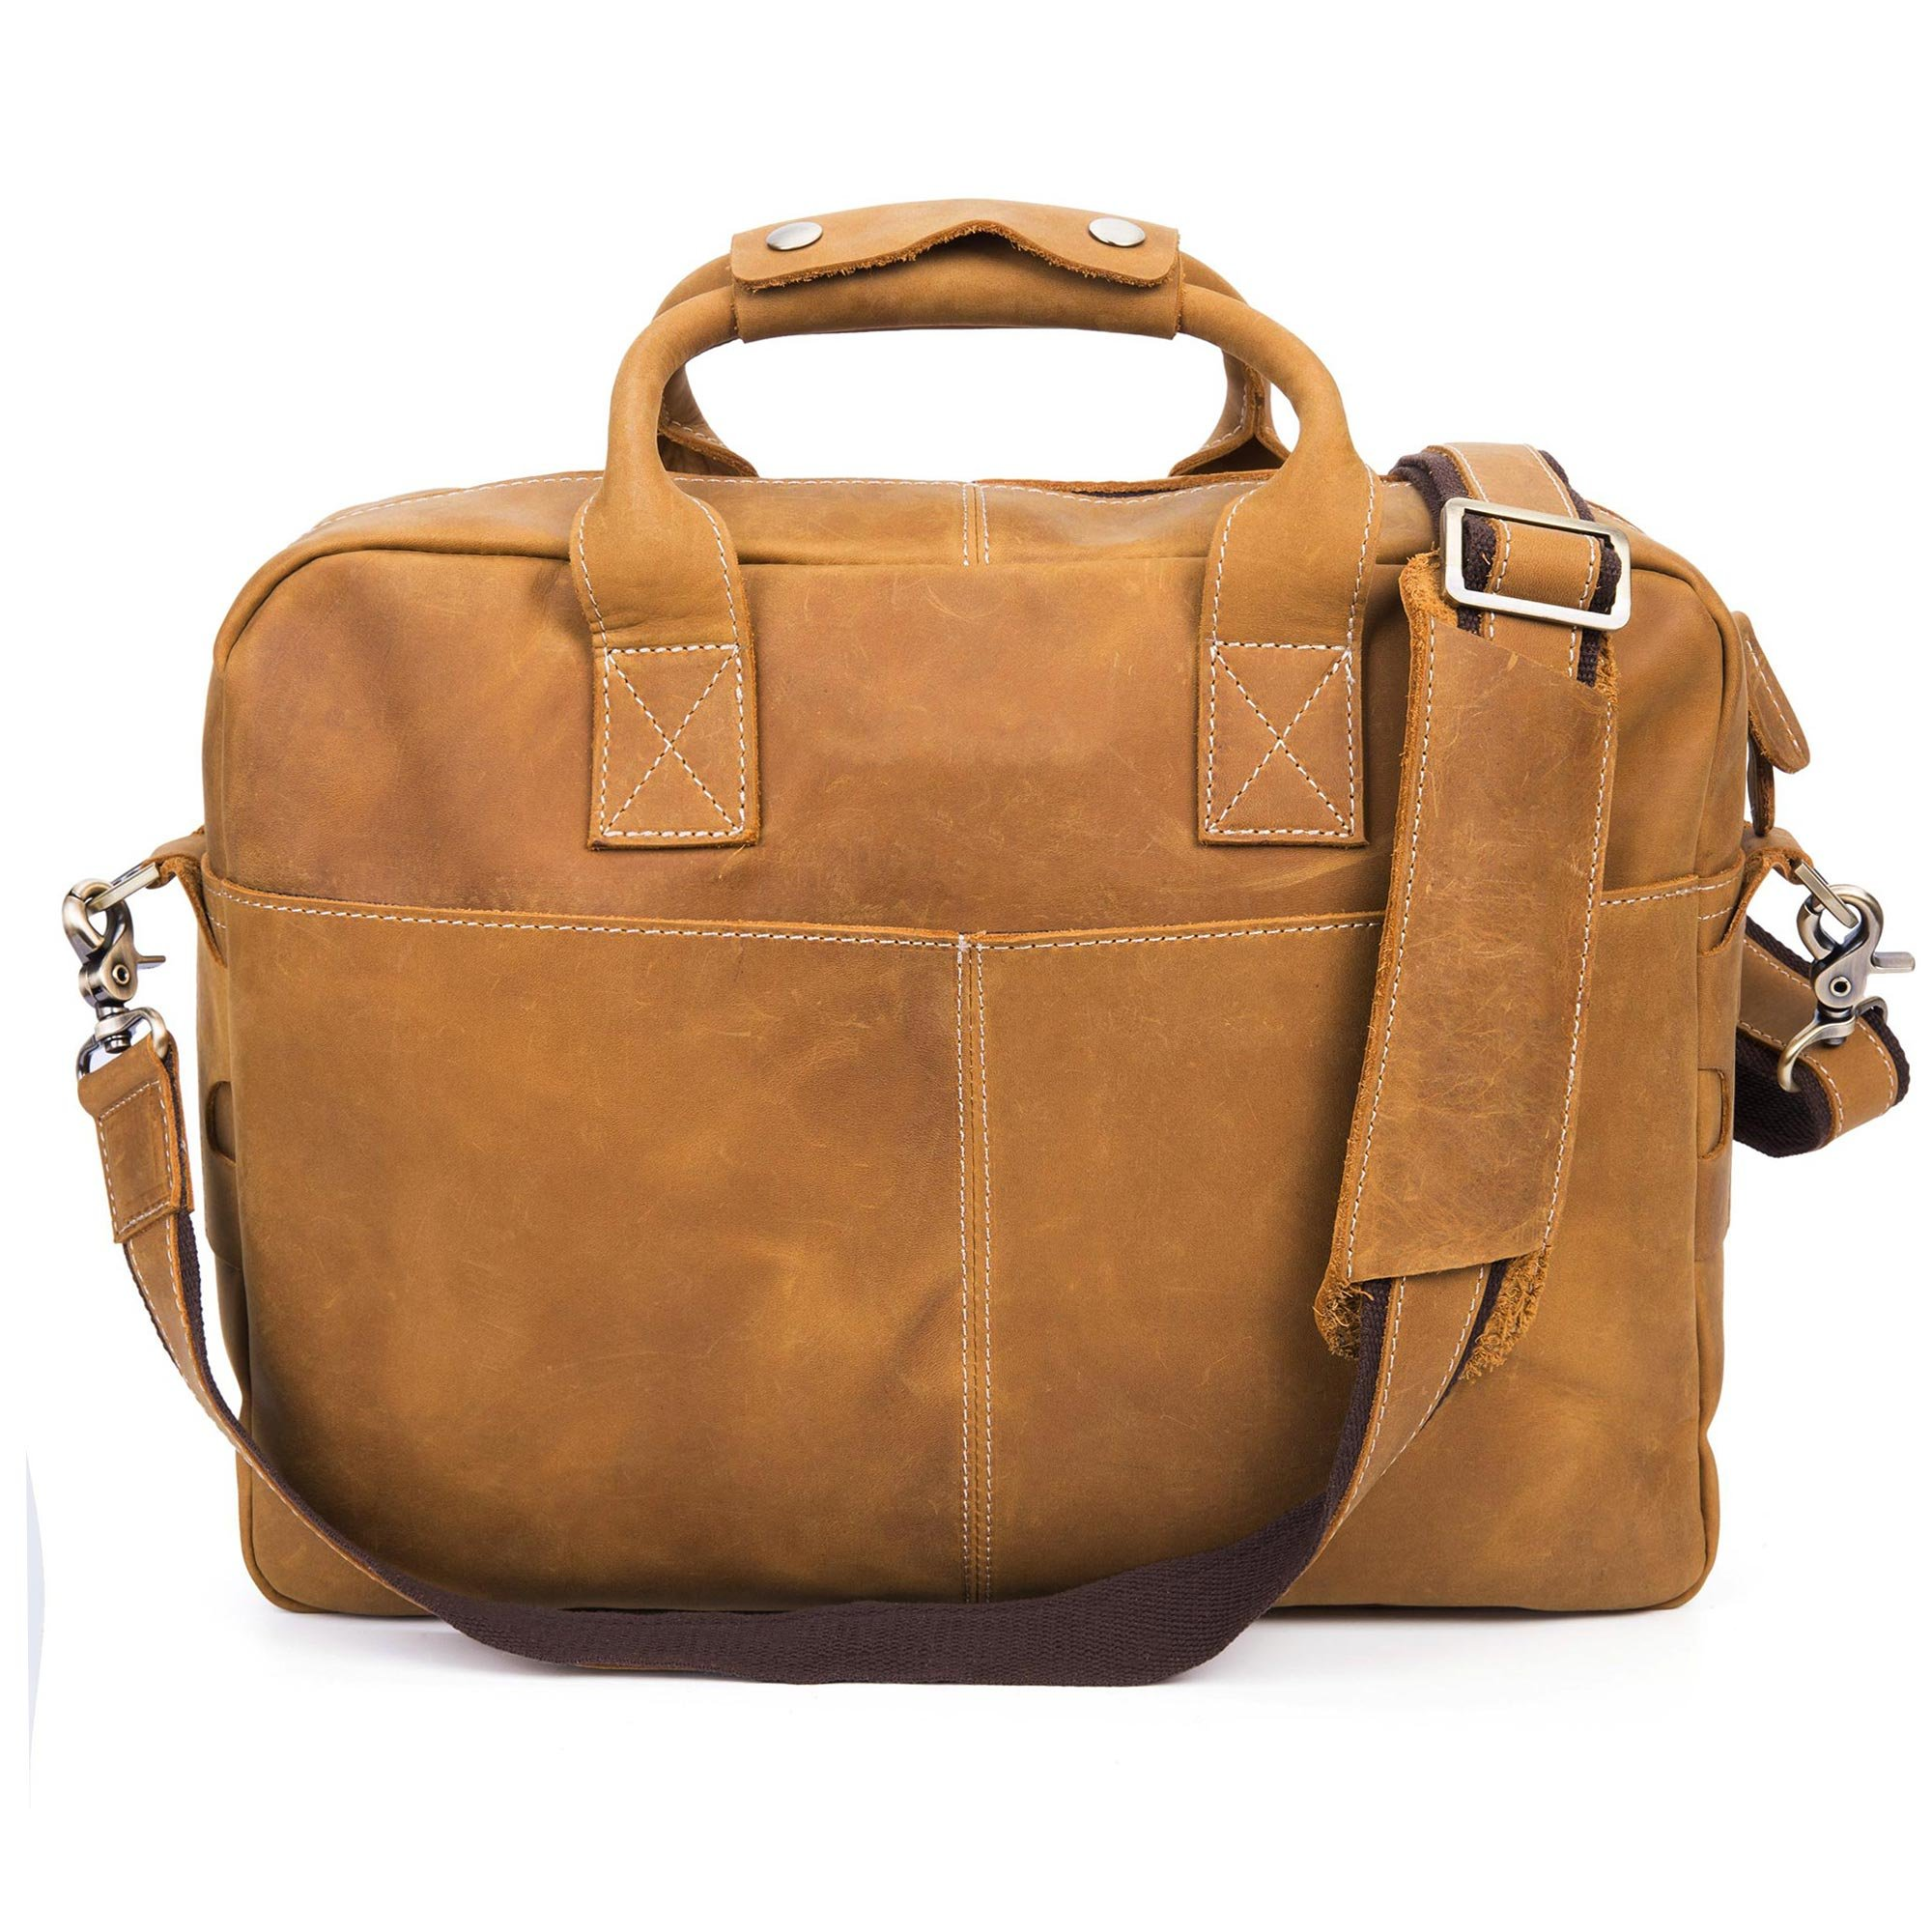 BAIGIO Men's Vintage Genuine Leather Laptop Briefcase 15.6'' Business Shoulder Tote Satchel Bag (Tan) by BAIGIO